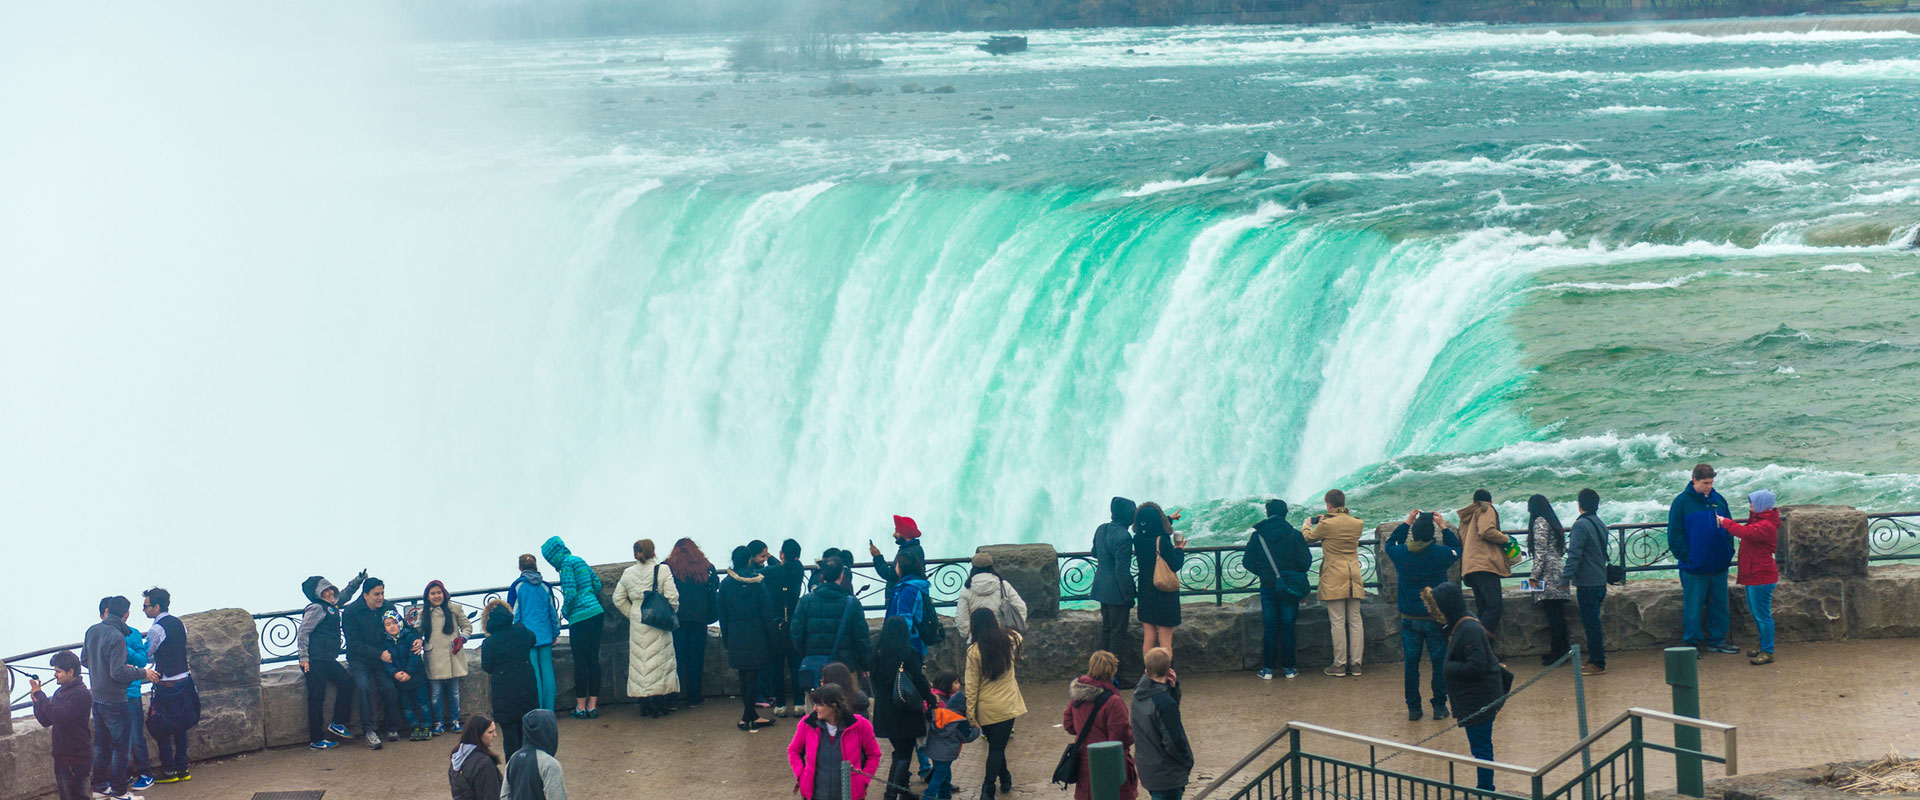 How to Decide What is the Best Tour of Niagara Falls